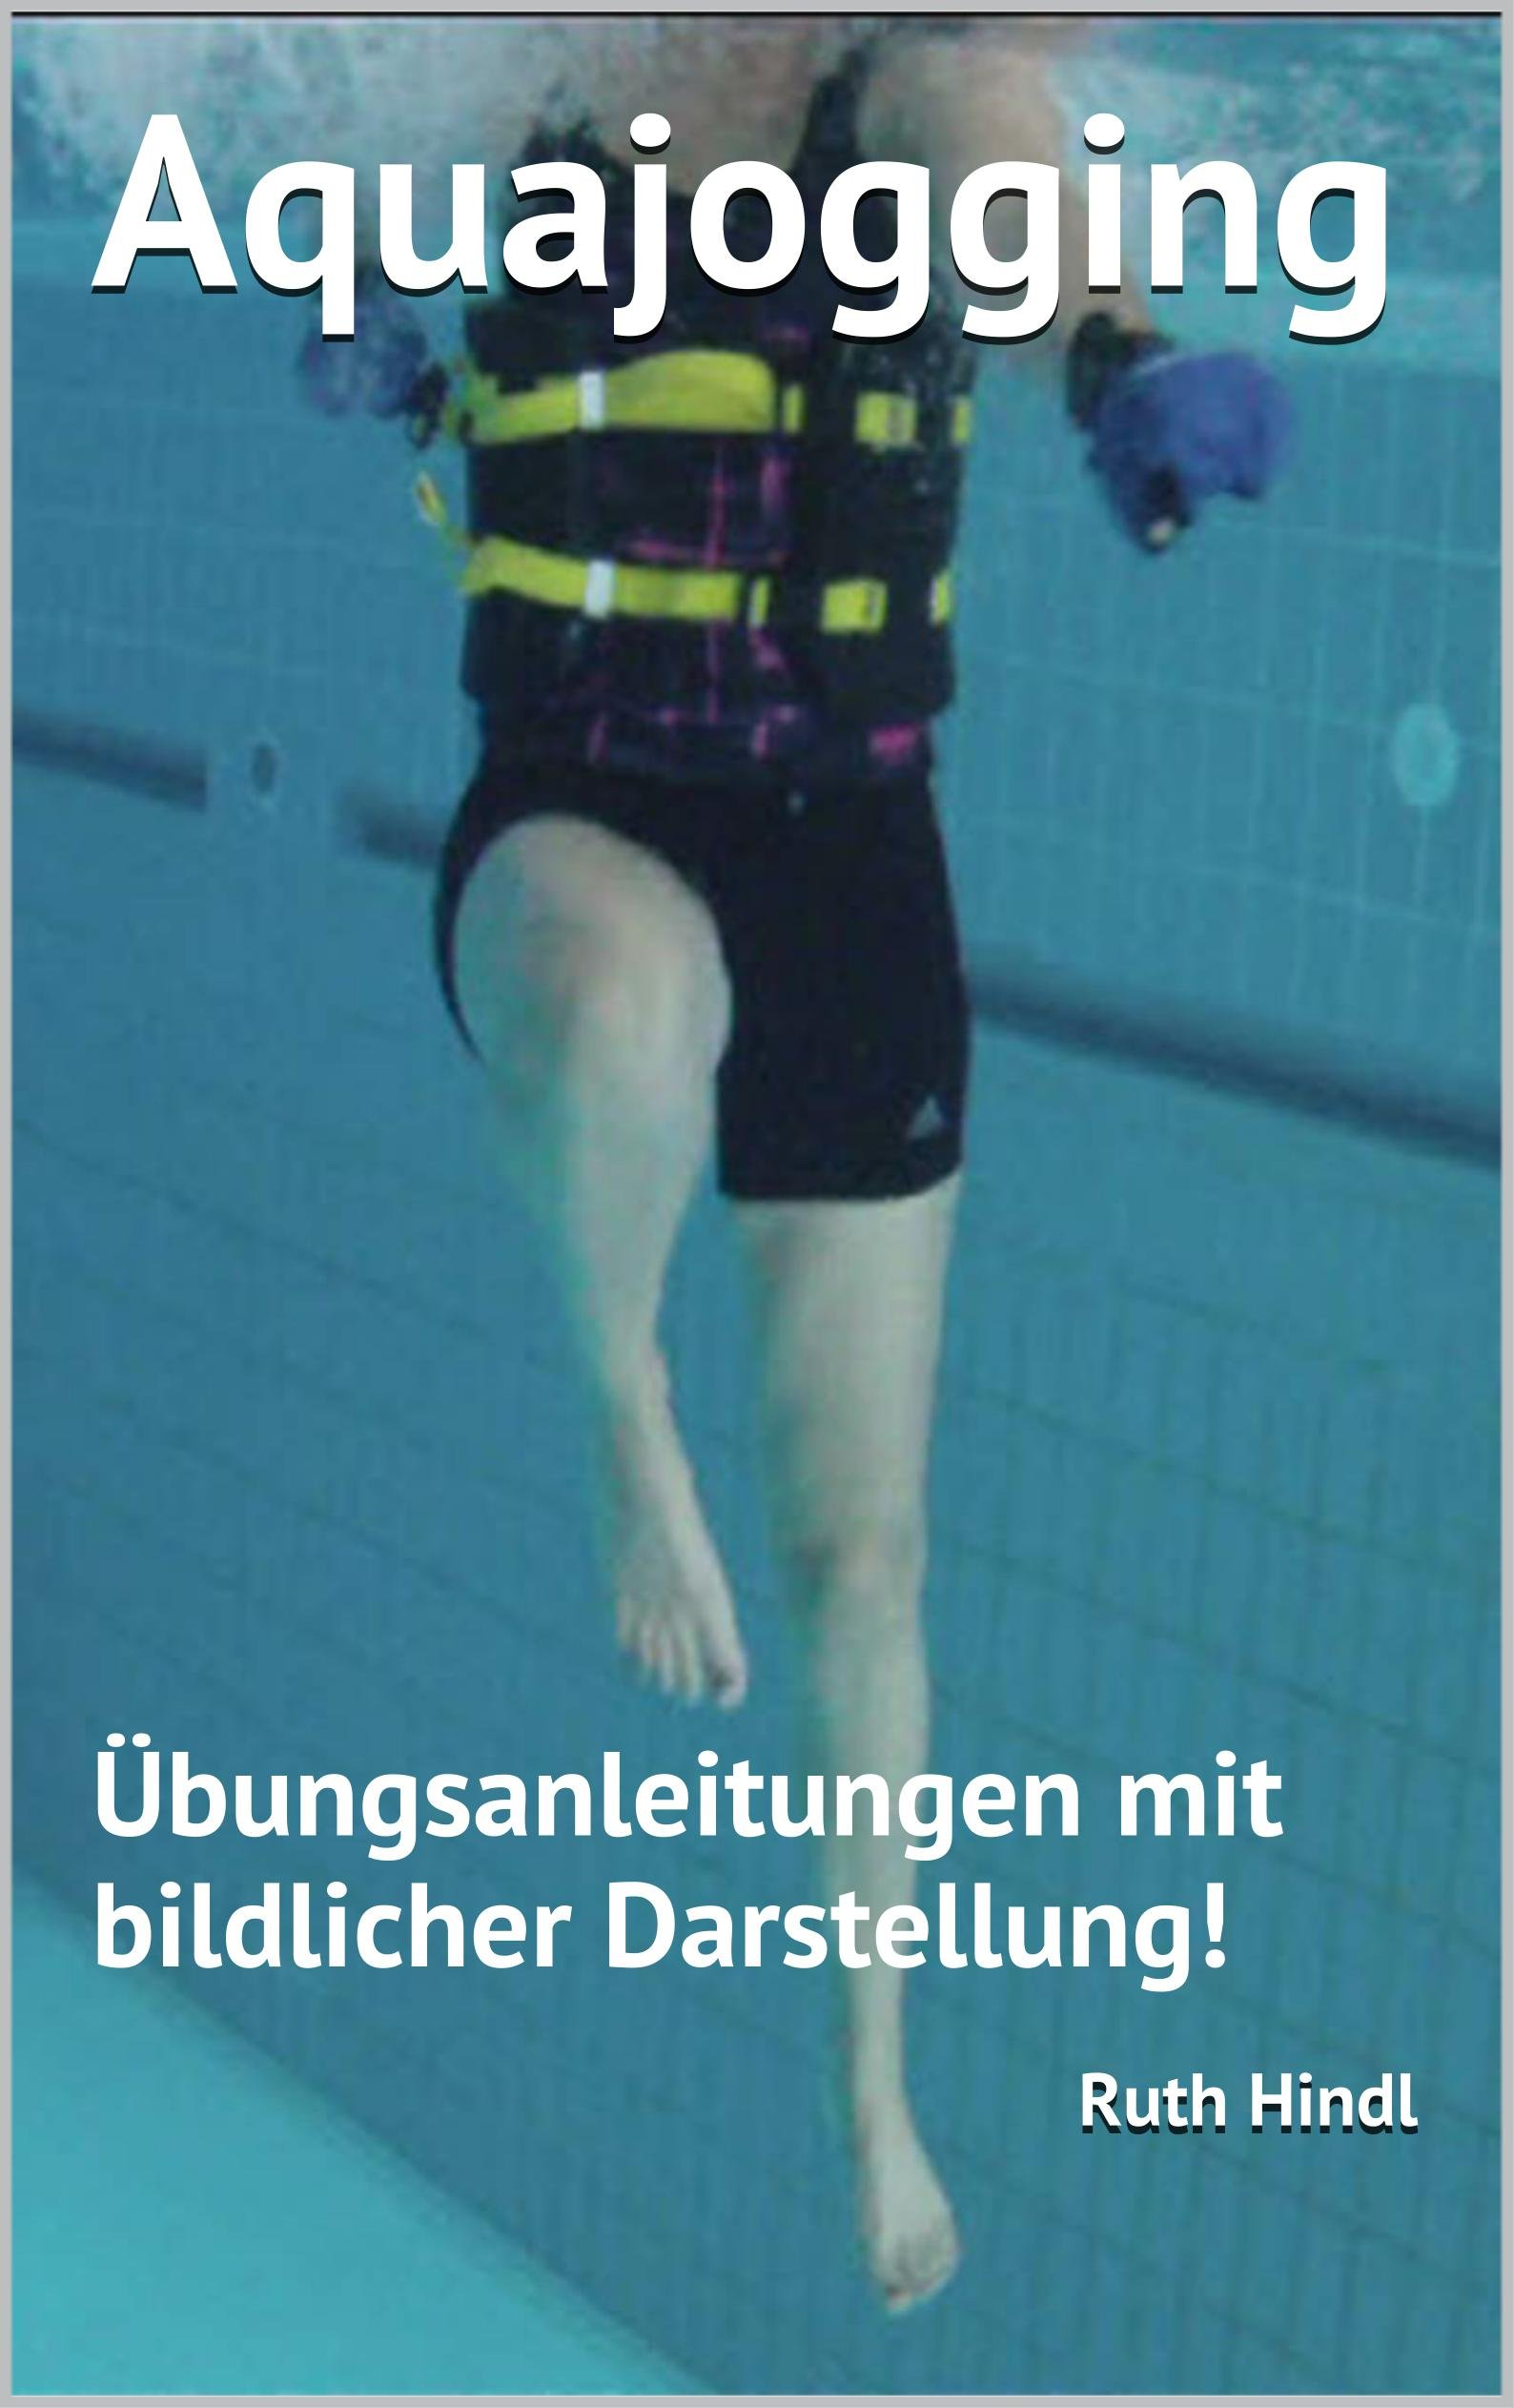 Download Aquajogging: Übungsanleitungen Mit Bildlicher Darstellung! (German Edition) 